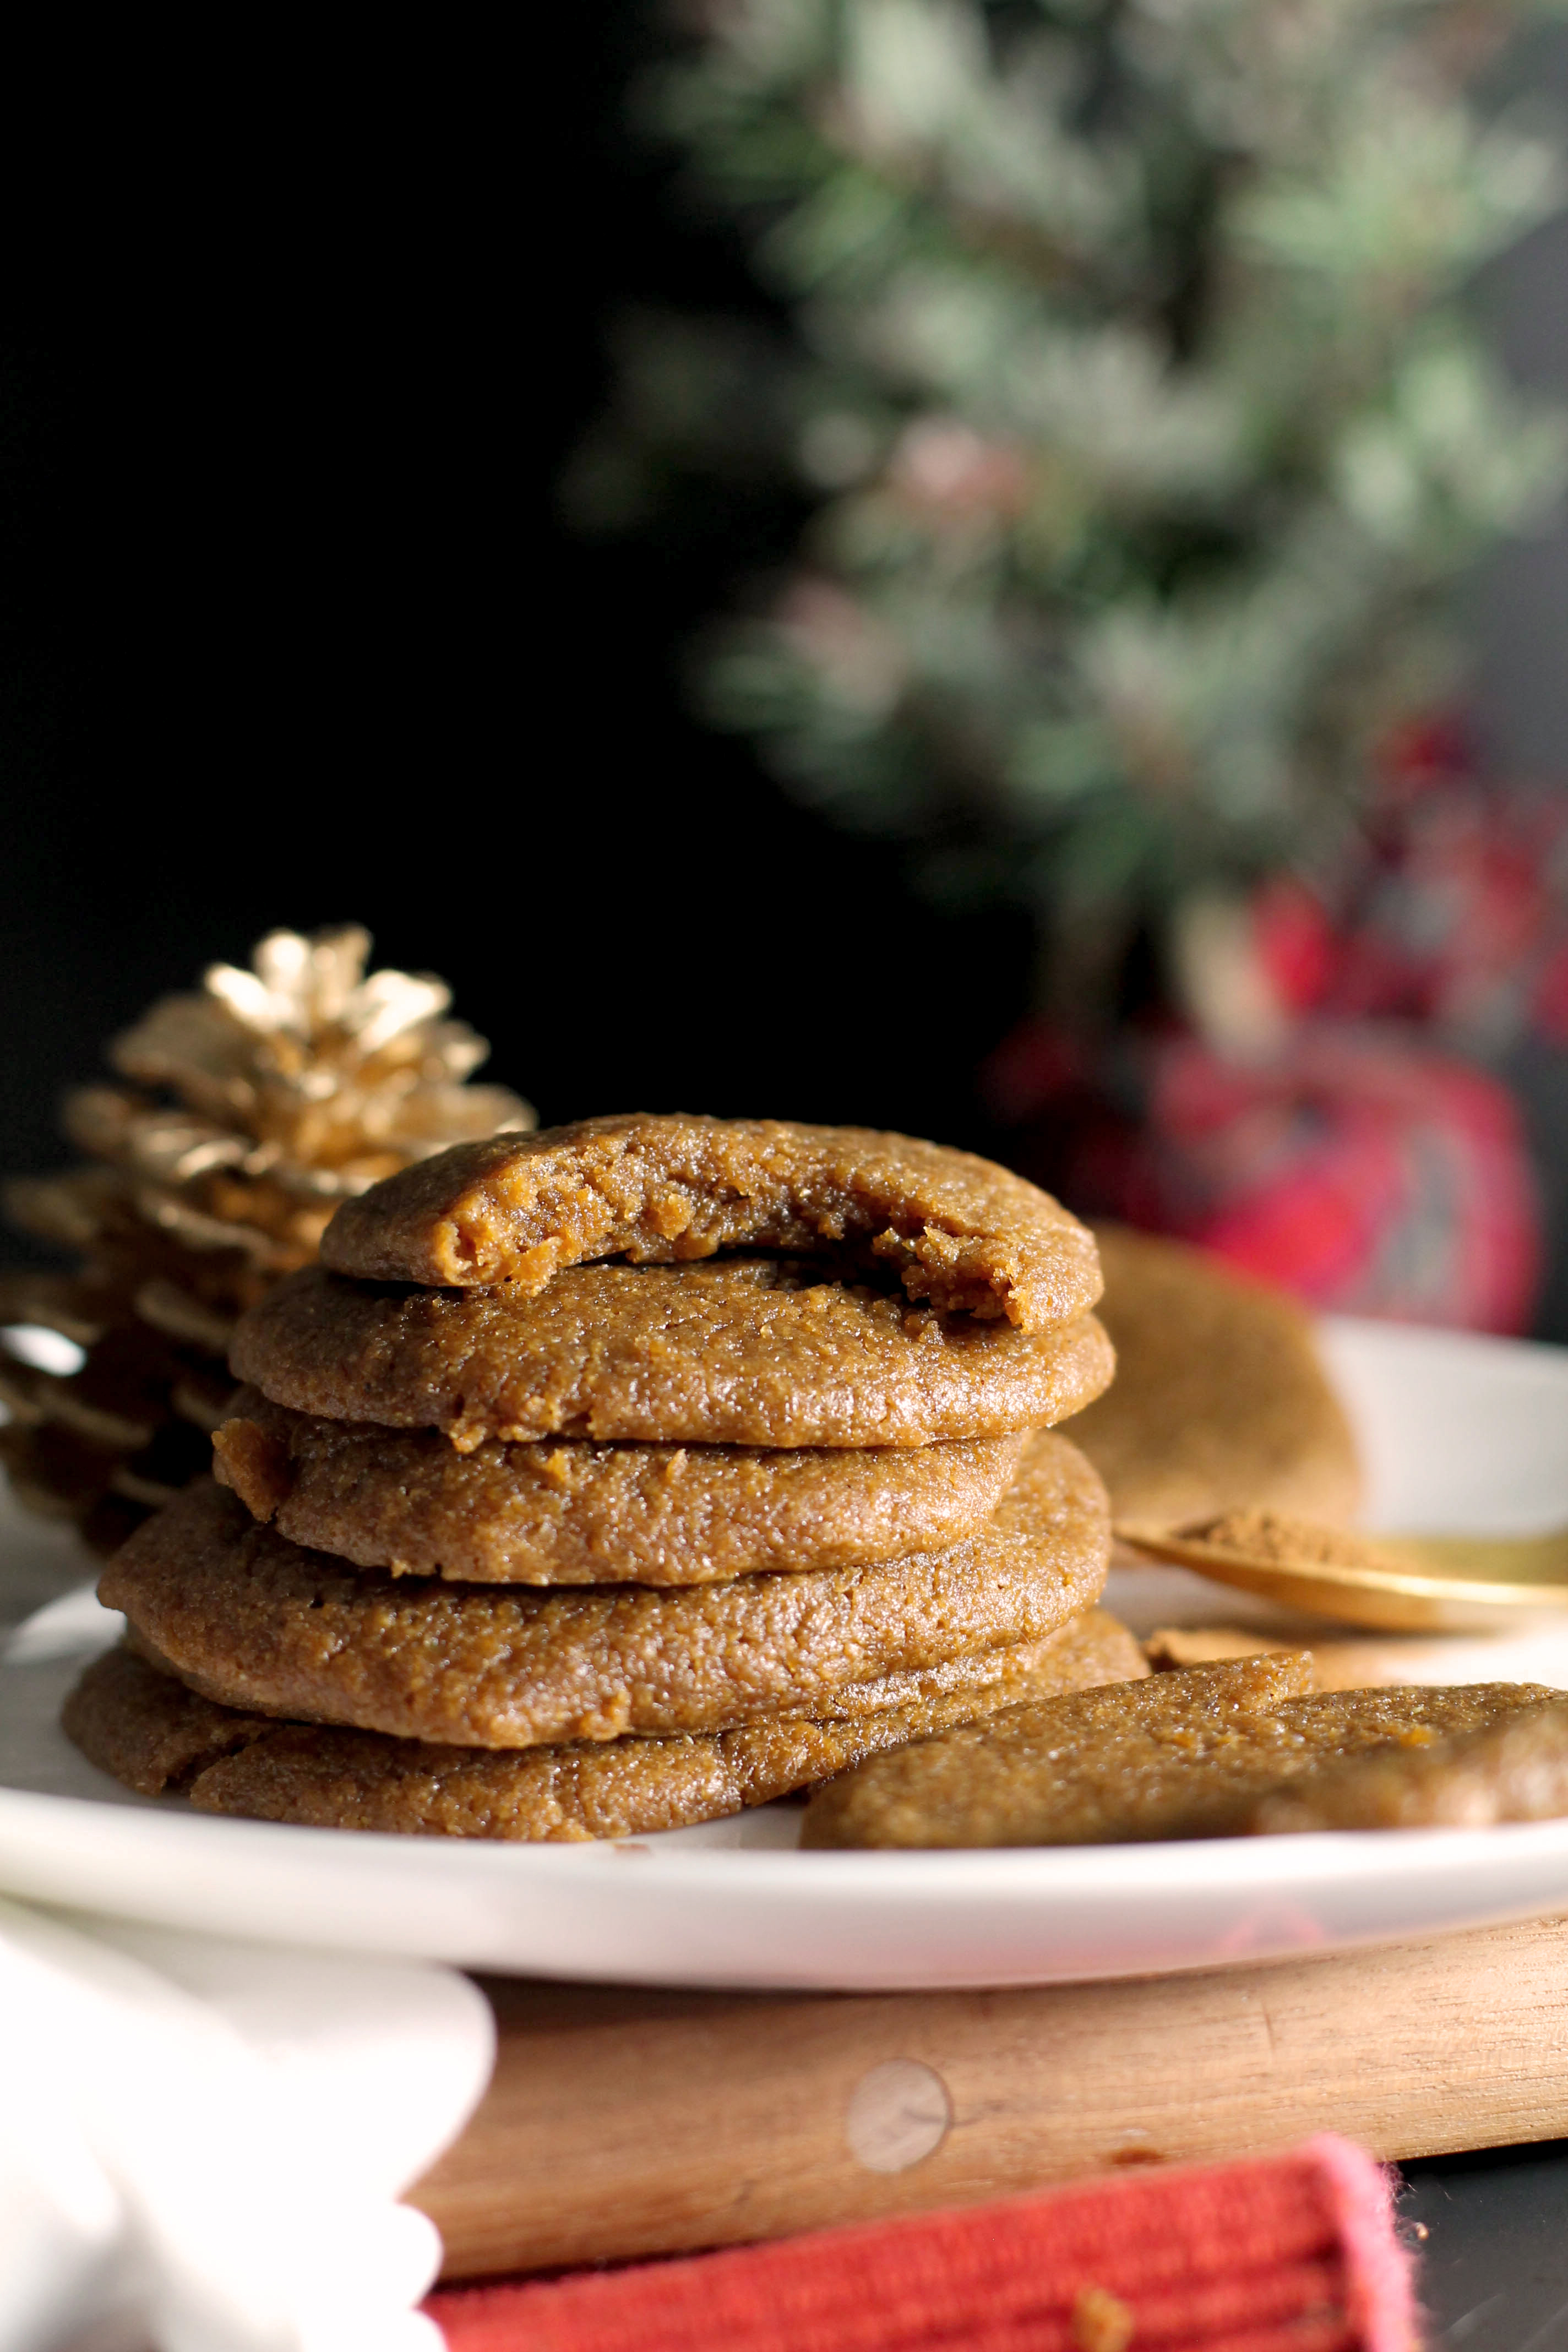 Vegan gingerbread cookies that are absolutely delicious! They're naturally sweet, filled with flavor, and the perfect dessert. Serve them with some hot cocoa and enjoy the Christmas season with a cozy snack.